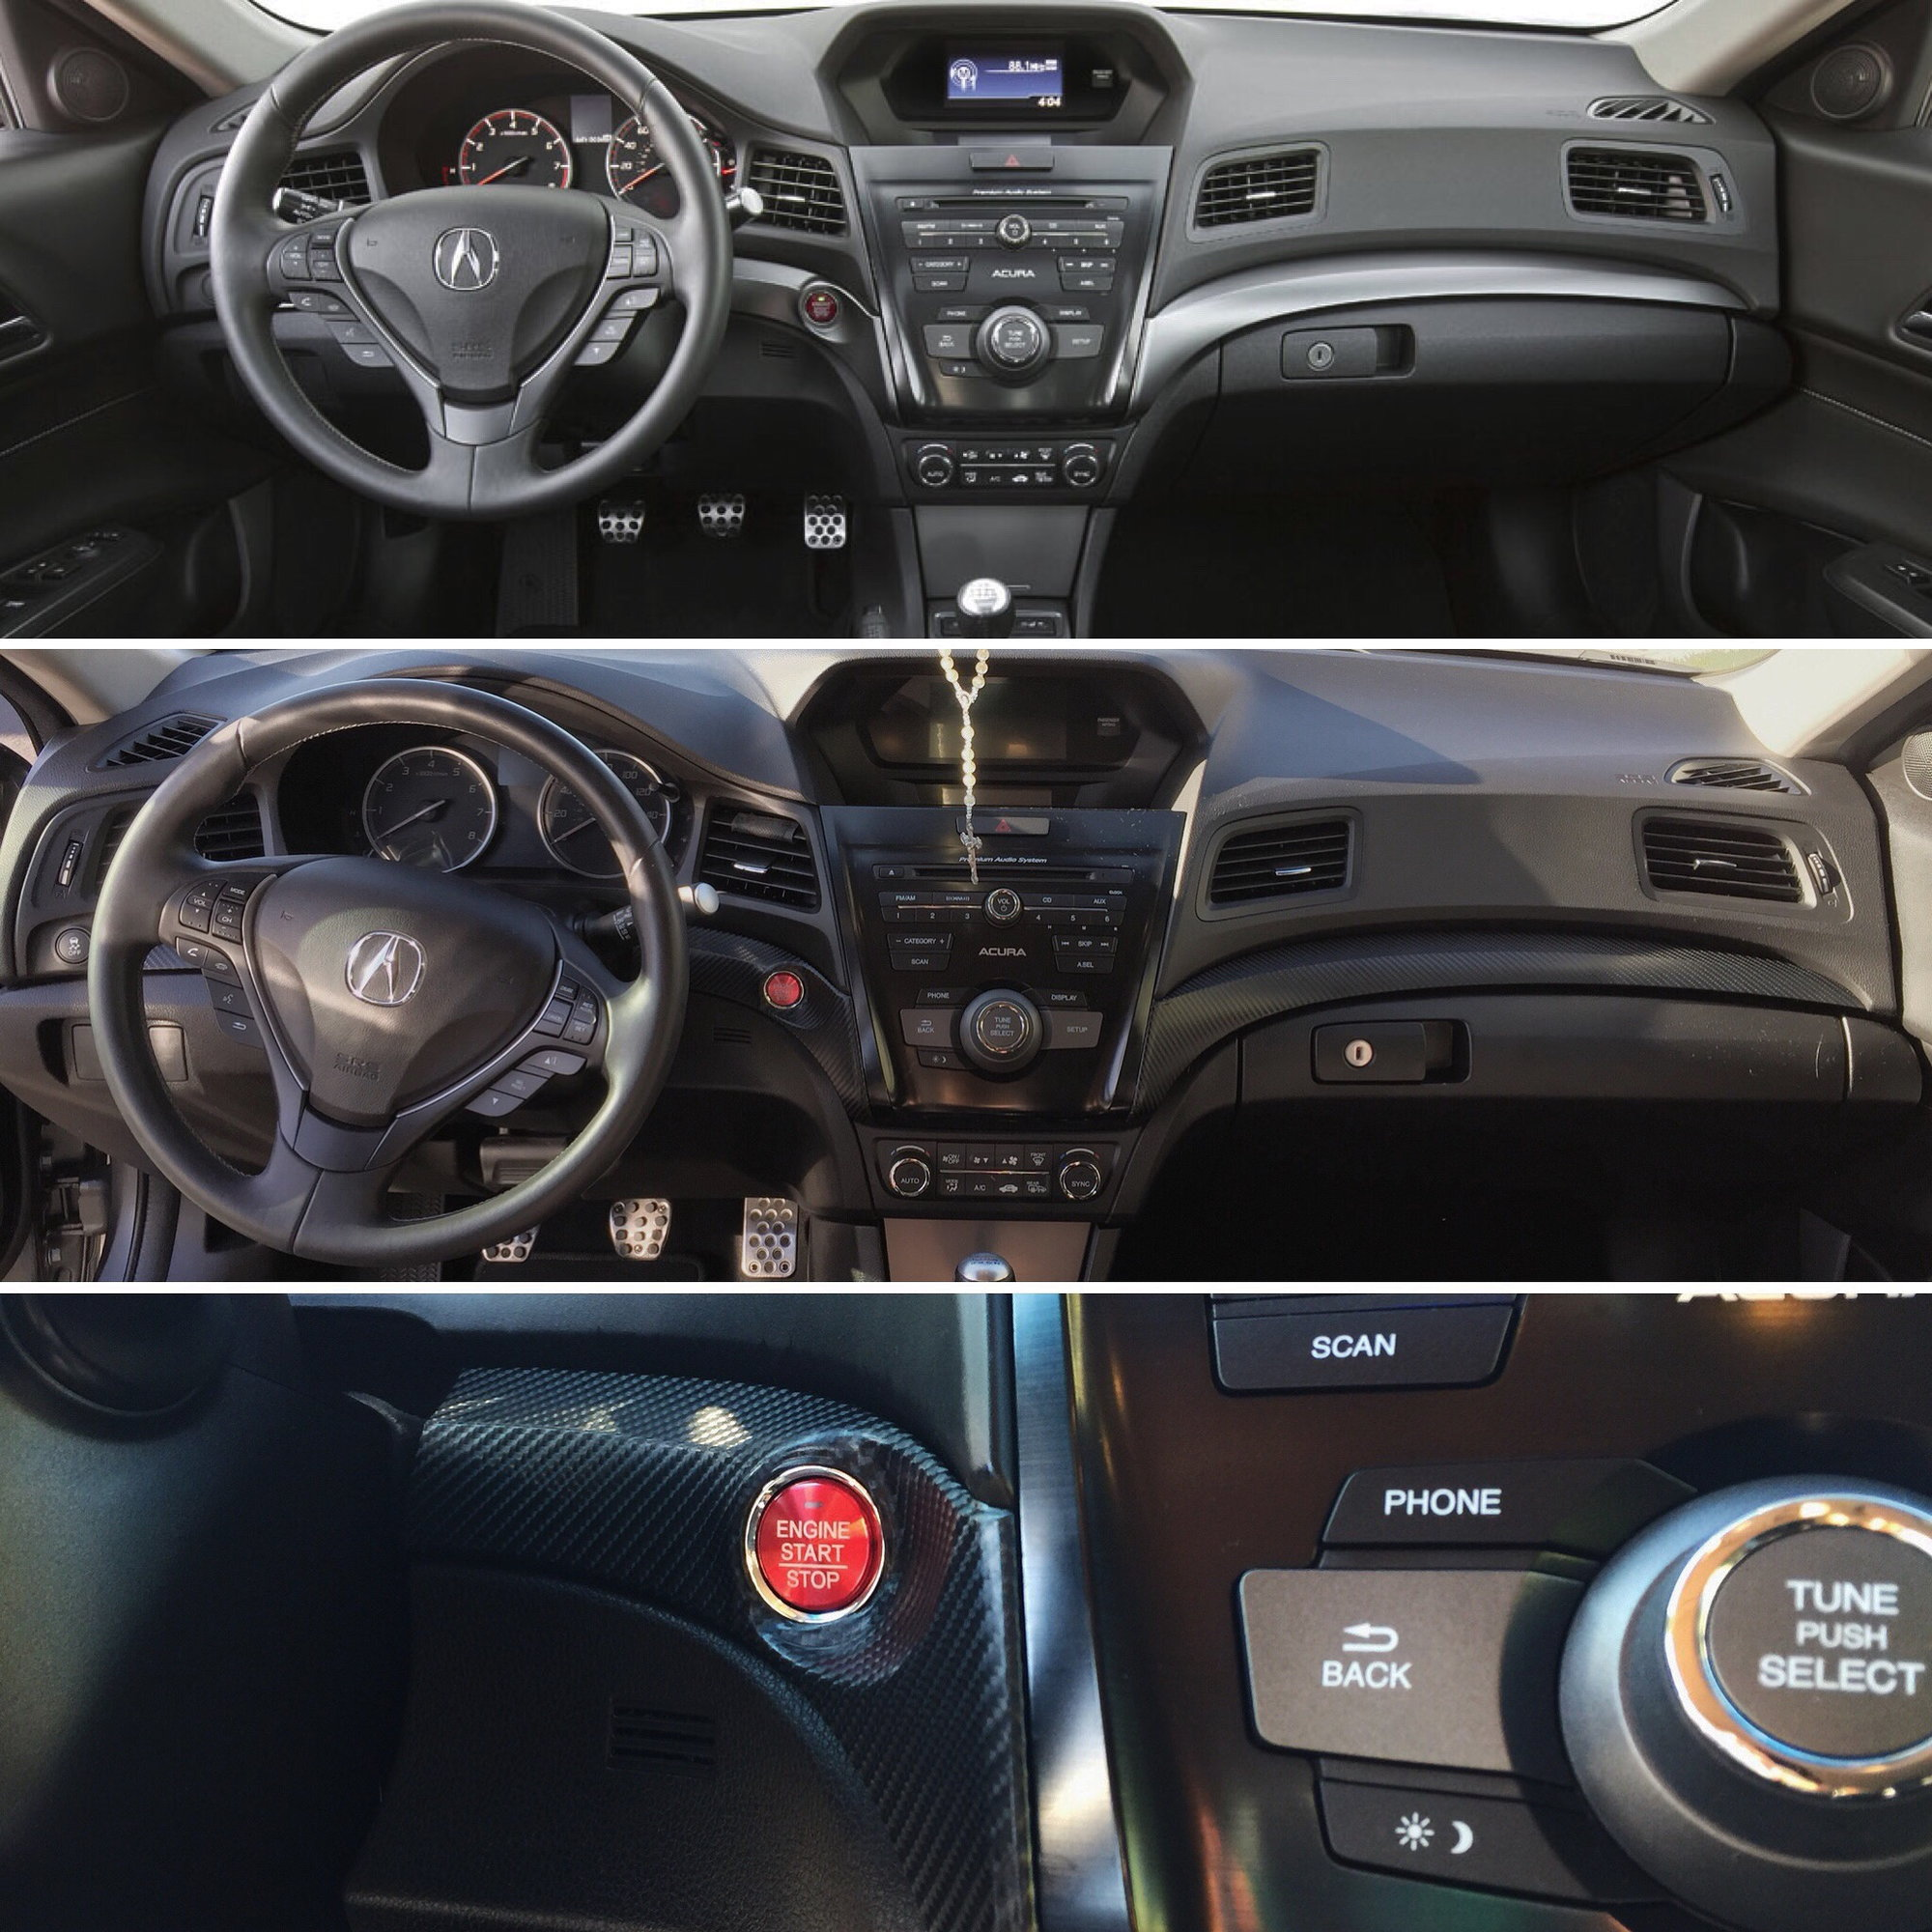 2014 ILX 2.4 Mods Suggestions